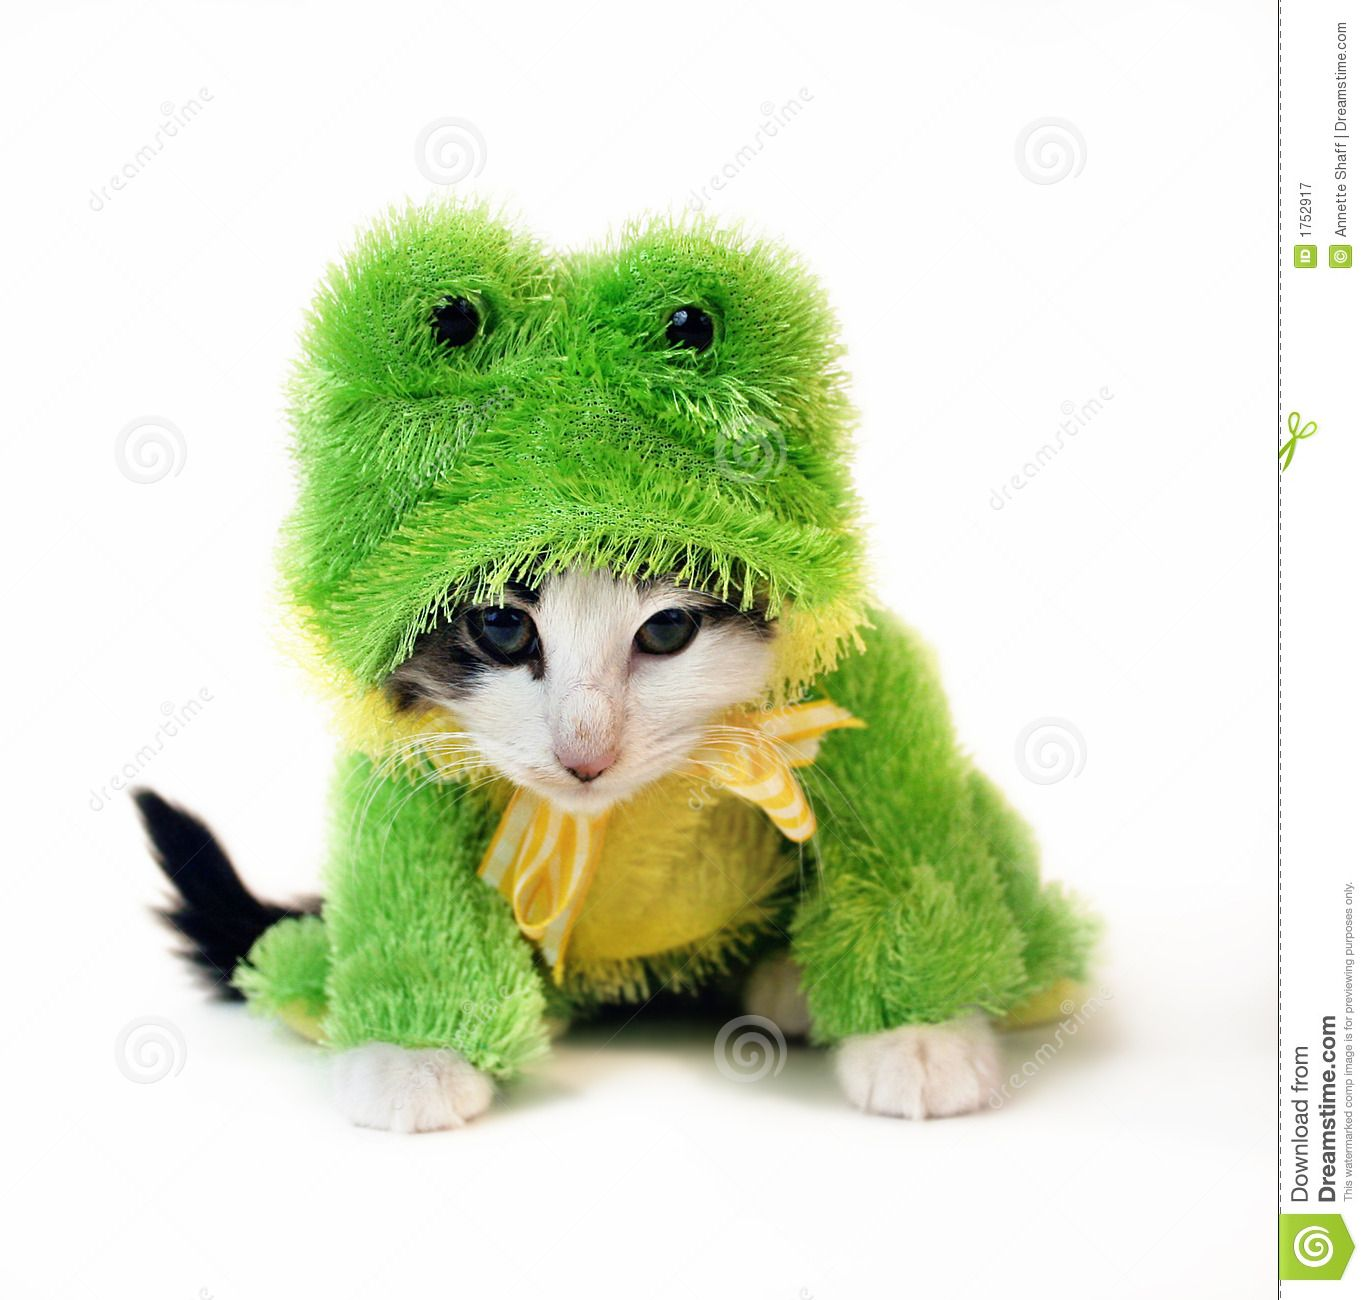 Cat Frog Kittens In Costumes Pet Costumes Cat Costumes